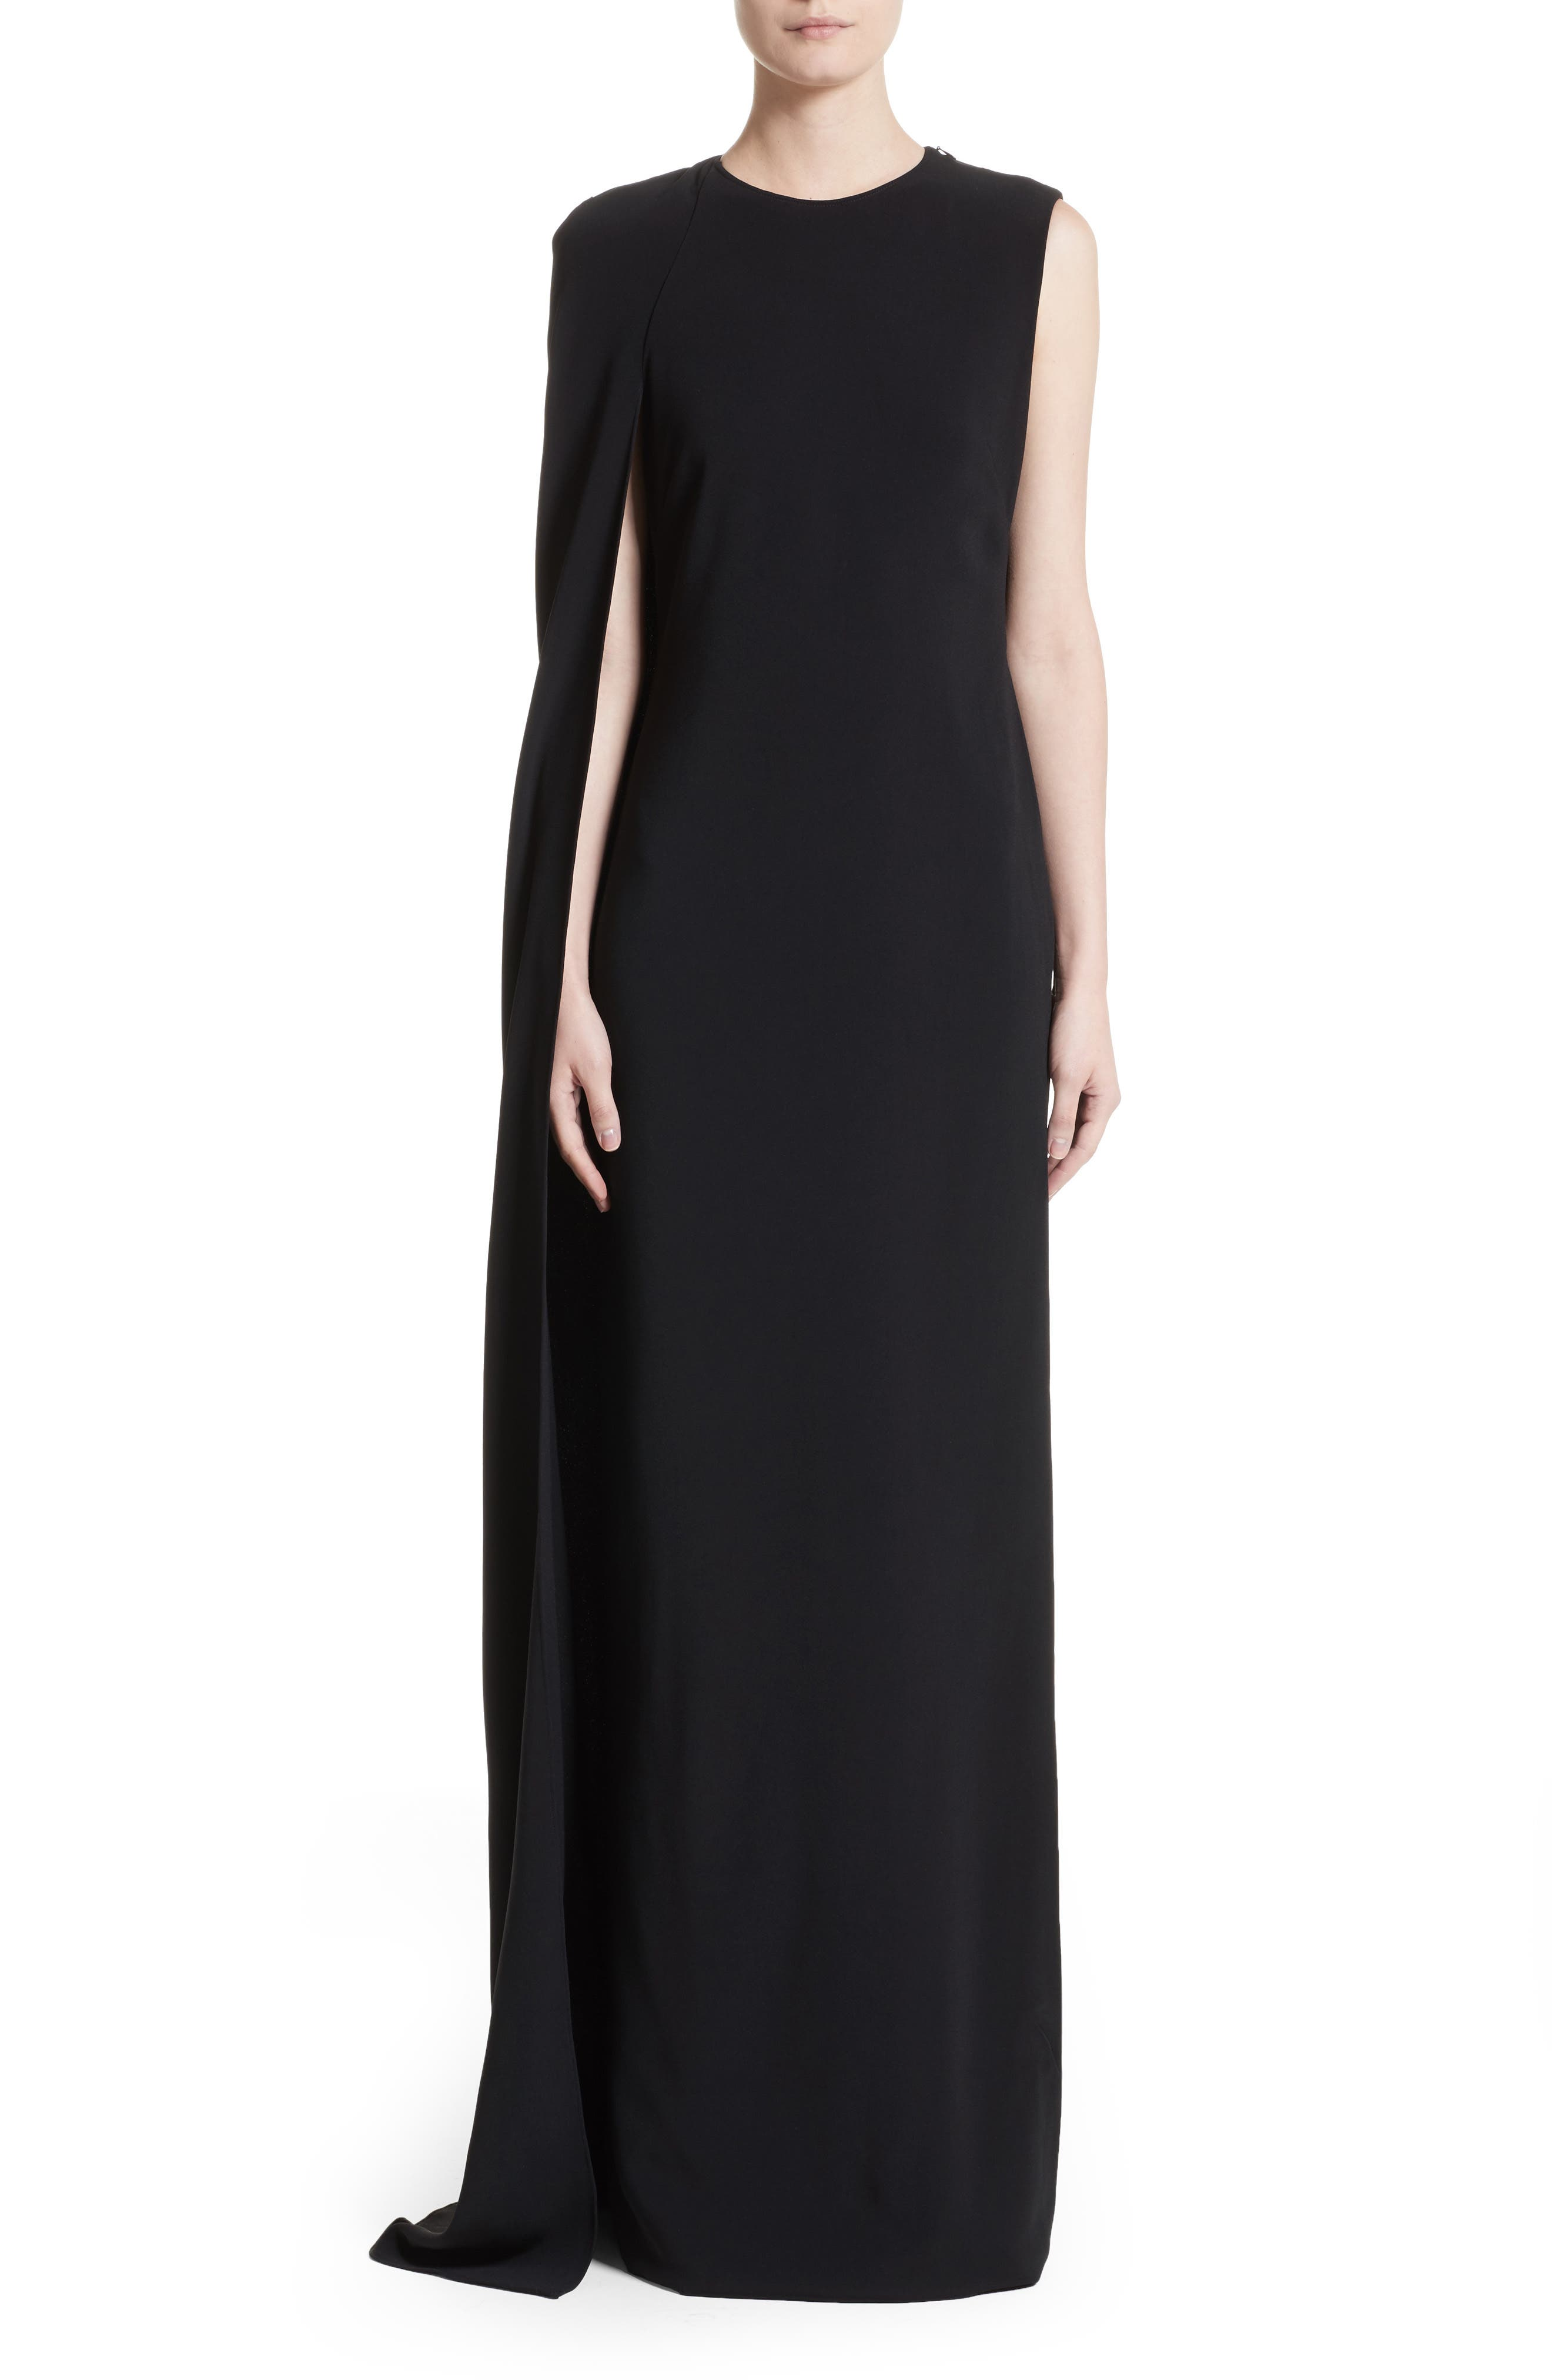 Alternate Image 1 Selected - Stella McCartney Stretch Cady One-Shoulder Cape Gown